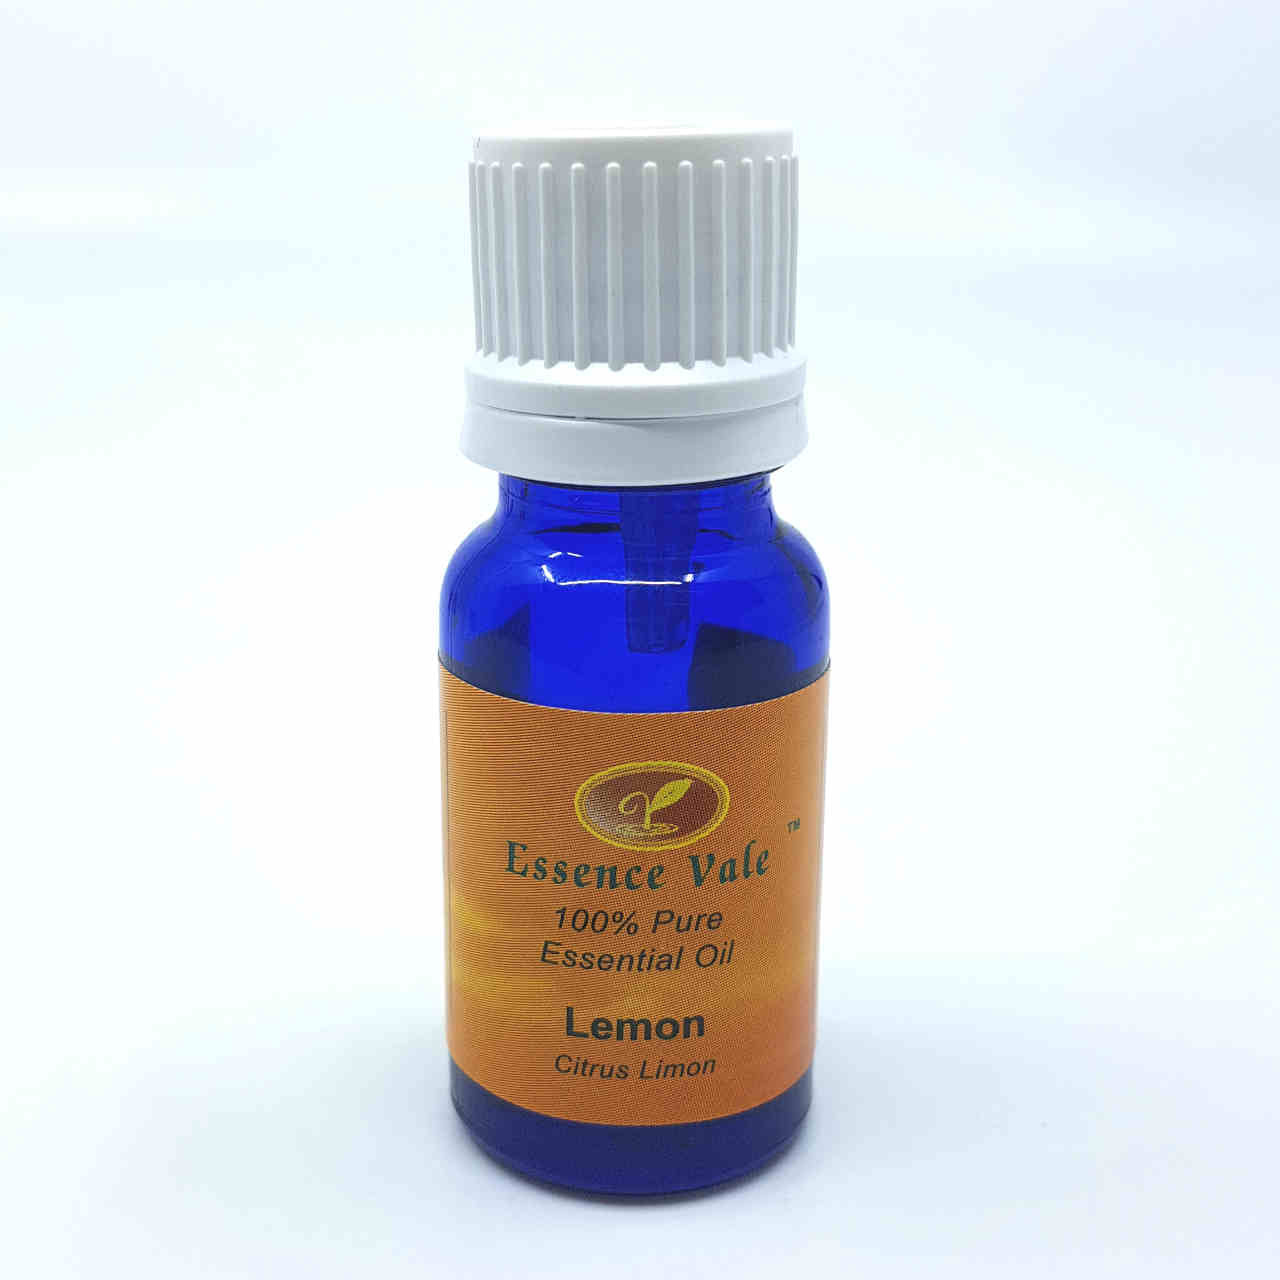 ESSENCE VALE 100% Pure Lemon Essential Oil